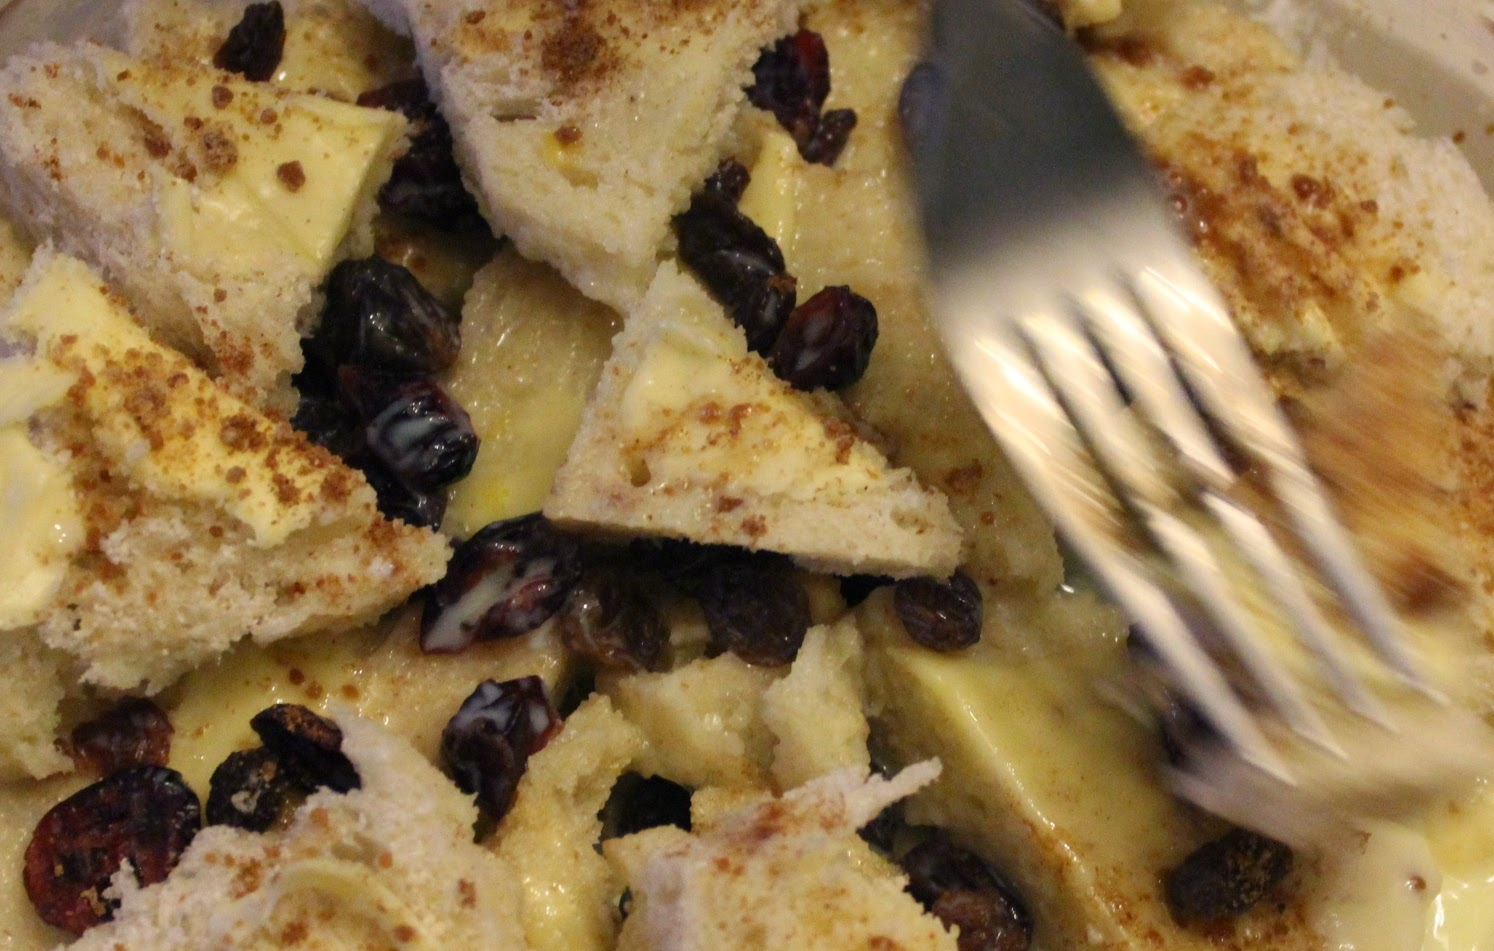 Bread and butter pudding organic recipe - leave to stand